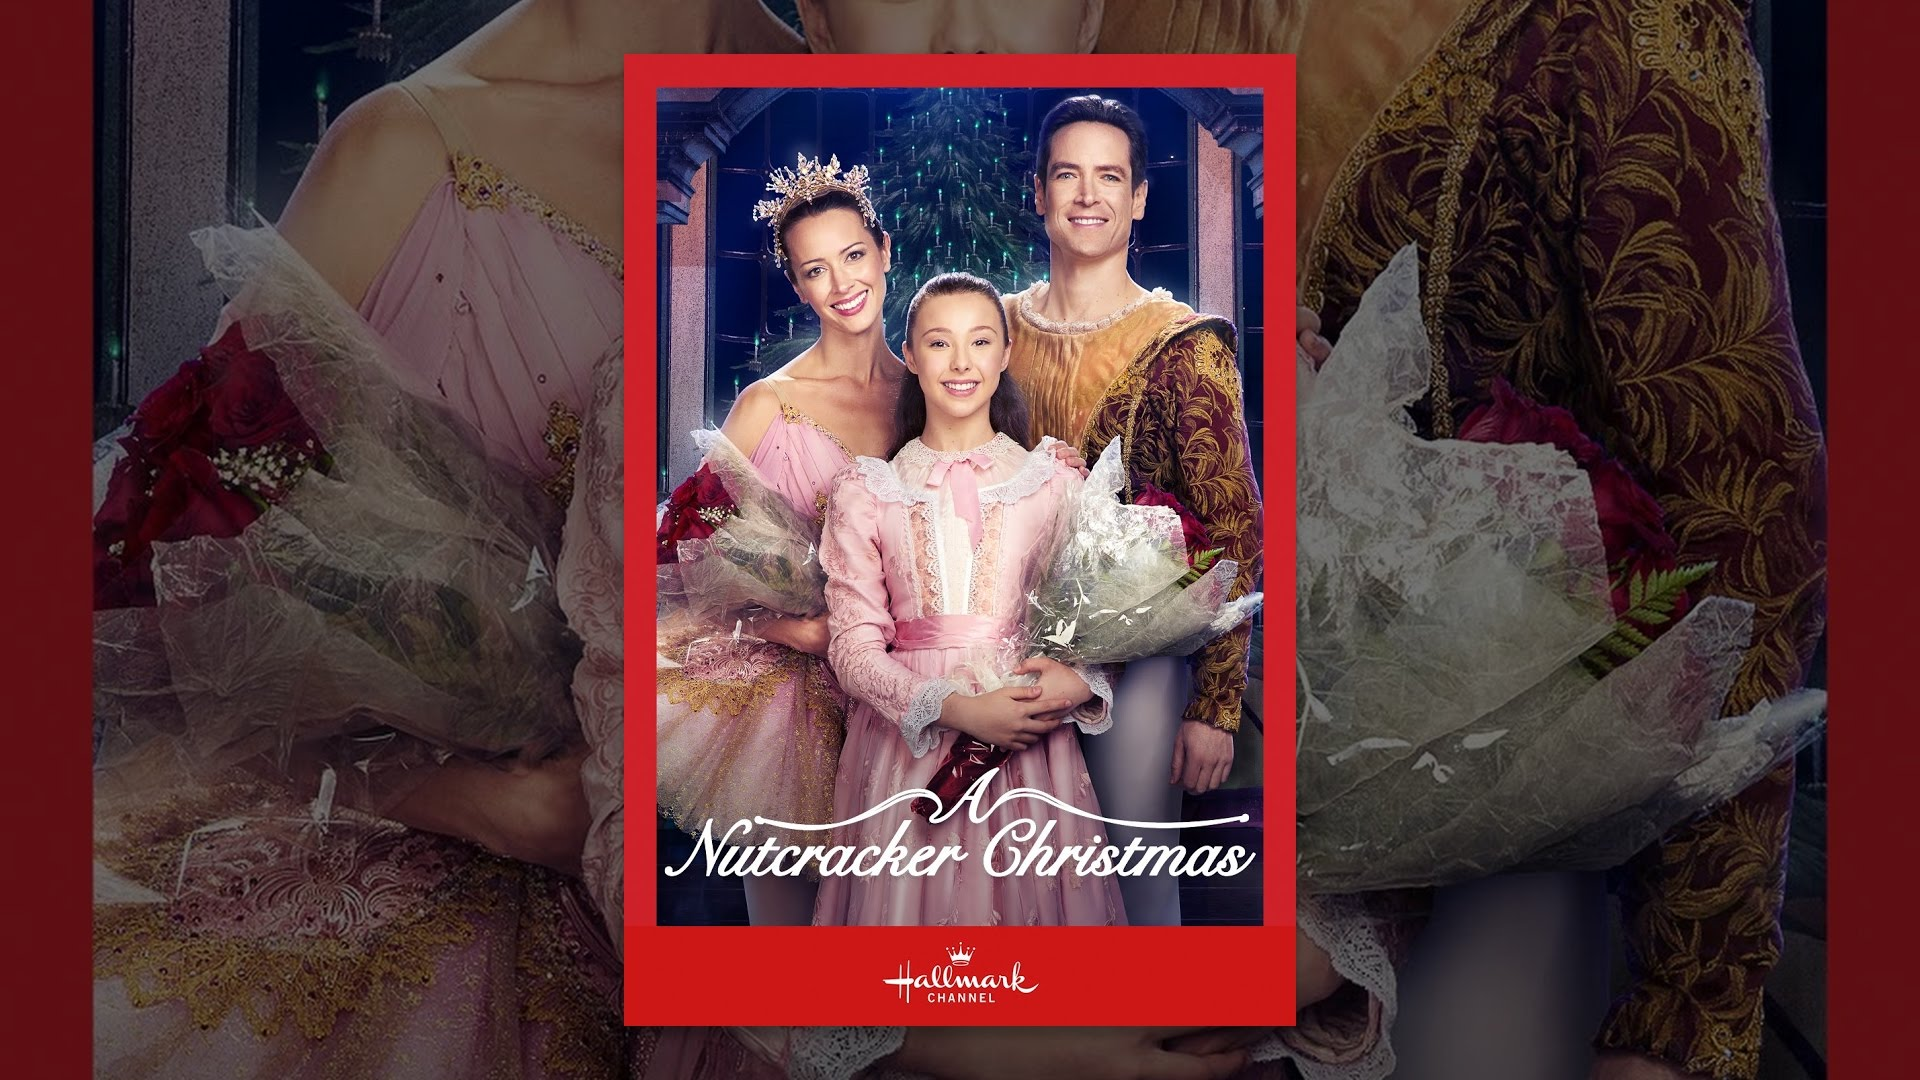 A Nutcracker Christmas - YouTube